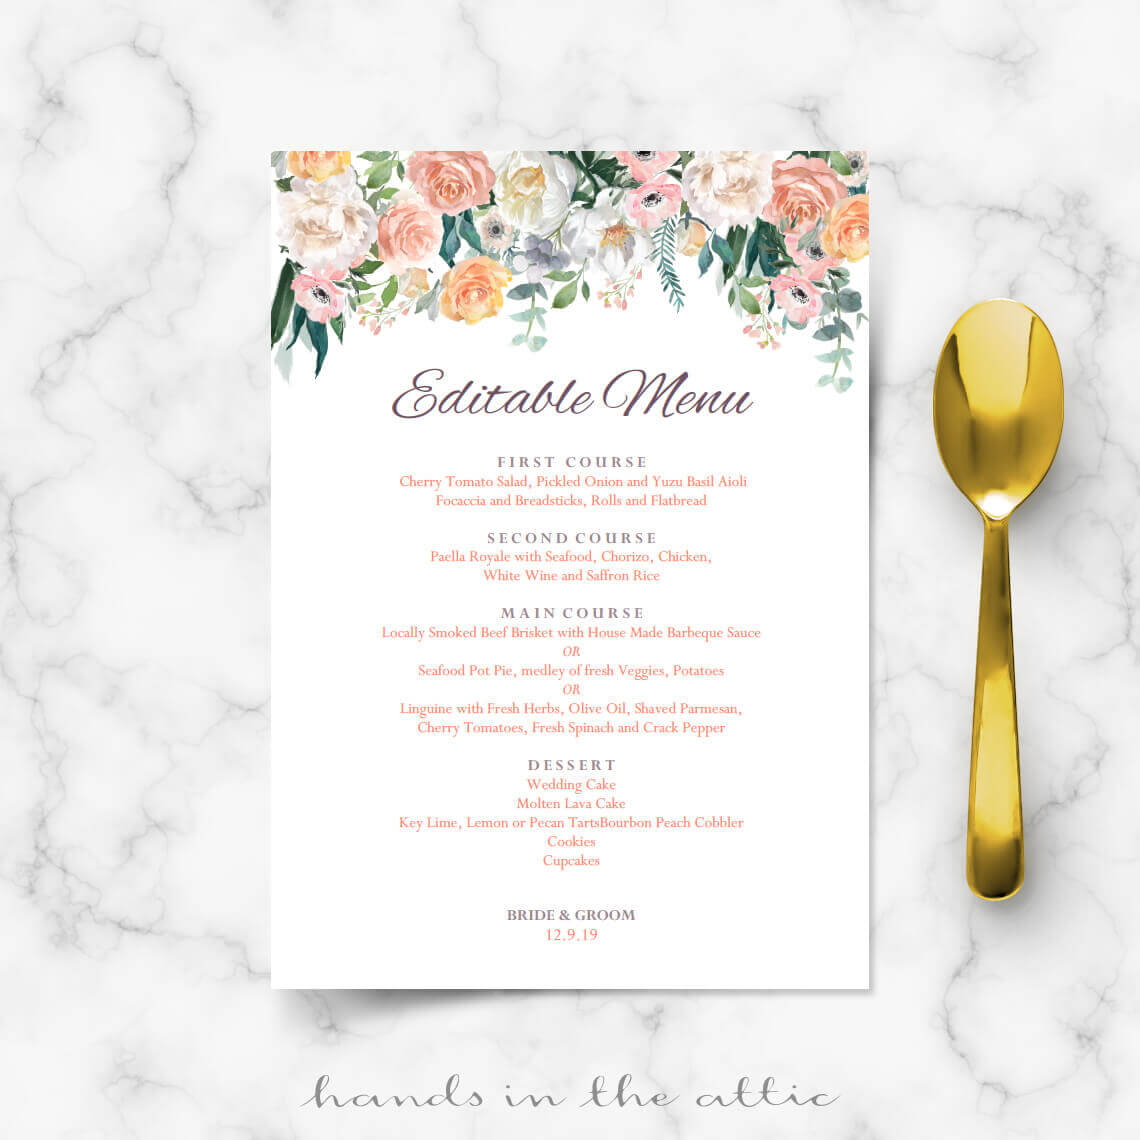 menu templates for weddings - secret garden vintage flowers menu template hands in the